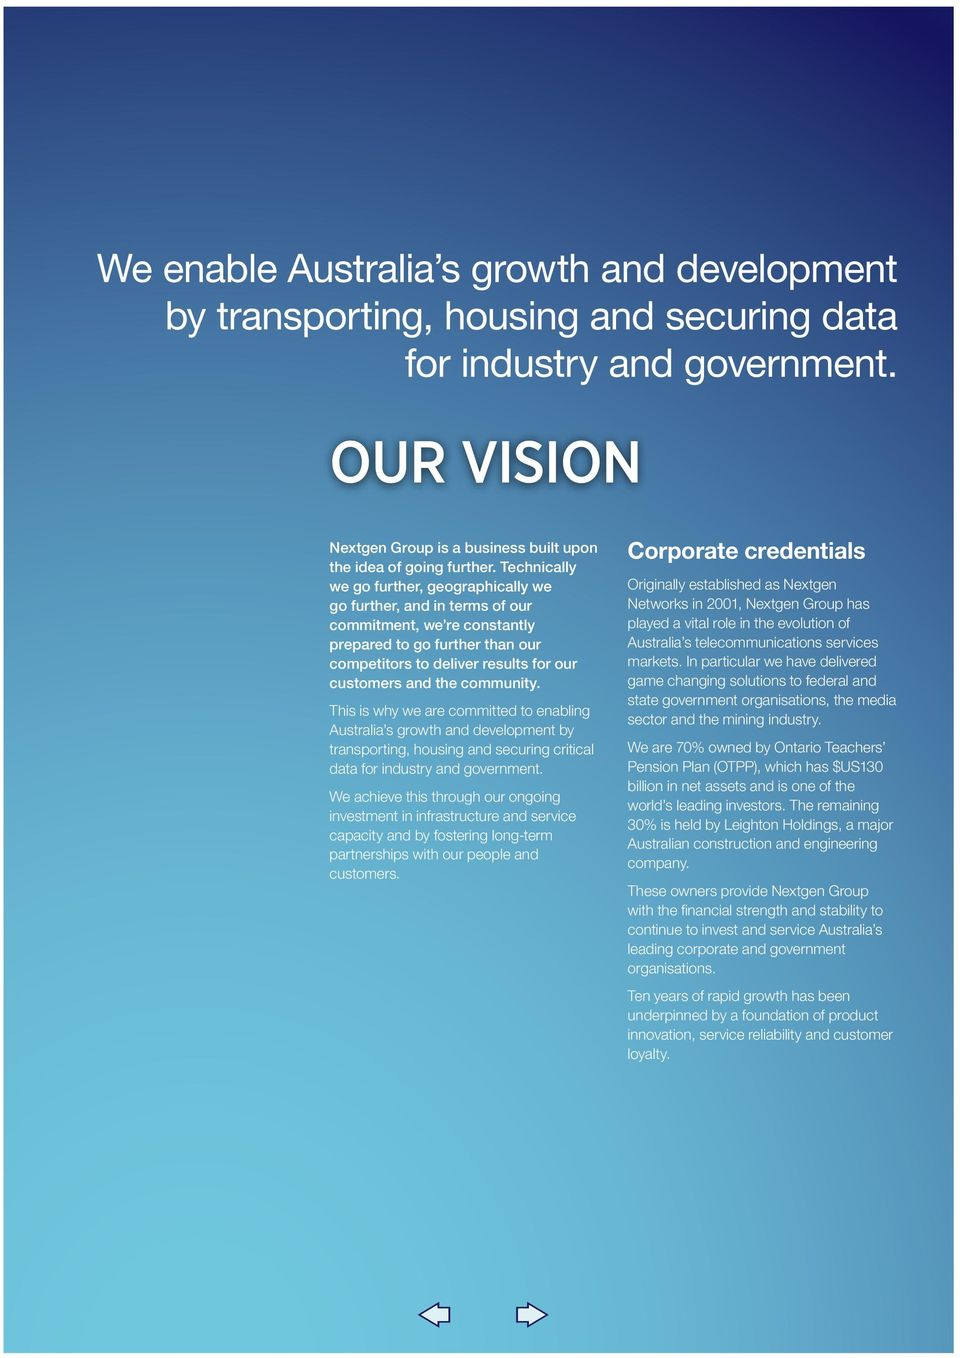 community. This is why we are committed to enabling Australia s growth and development by transporting, housing and securing critical data for industry and government.